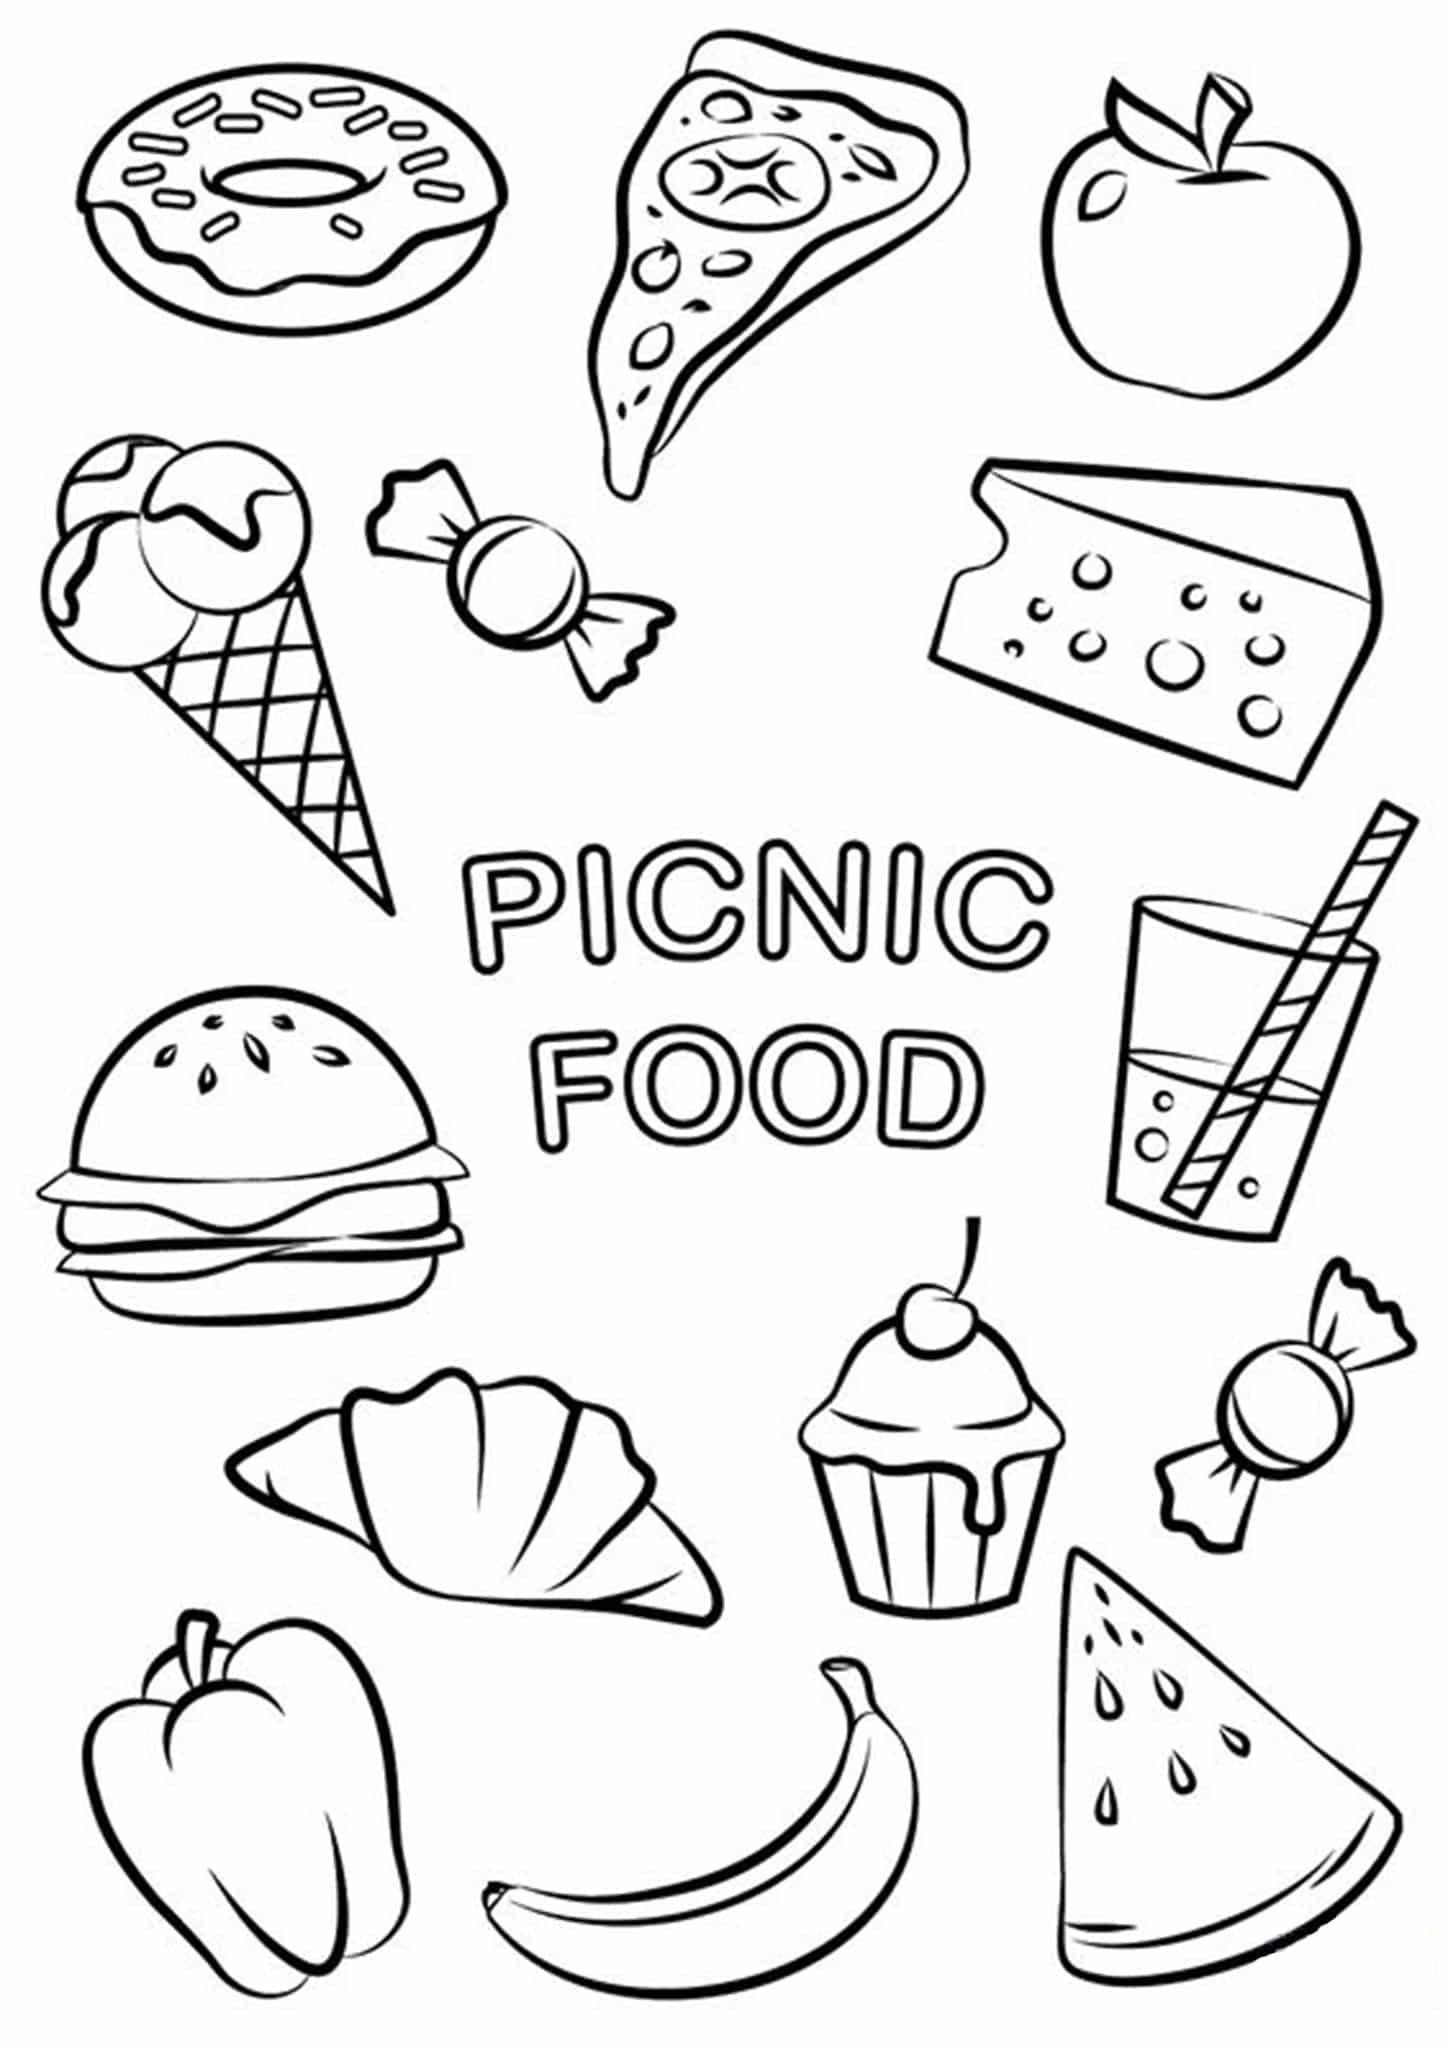 - Free & Easy To Print Food Coloring Pages - Tulamama